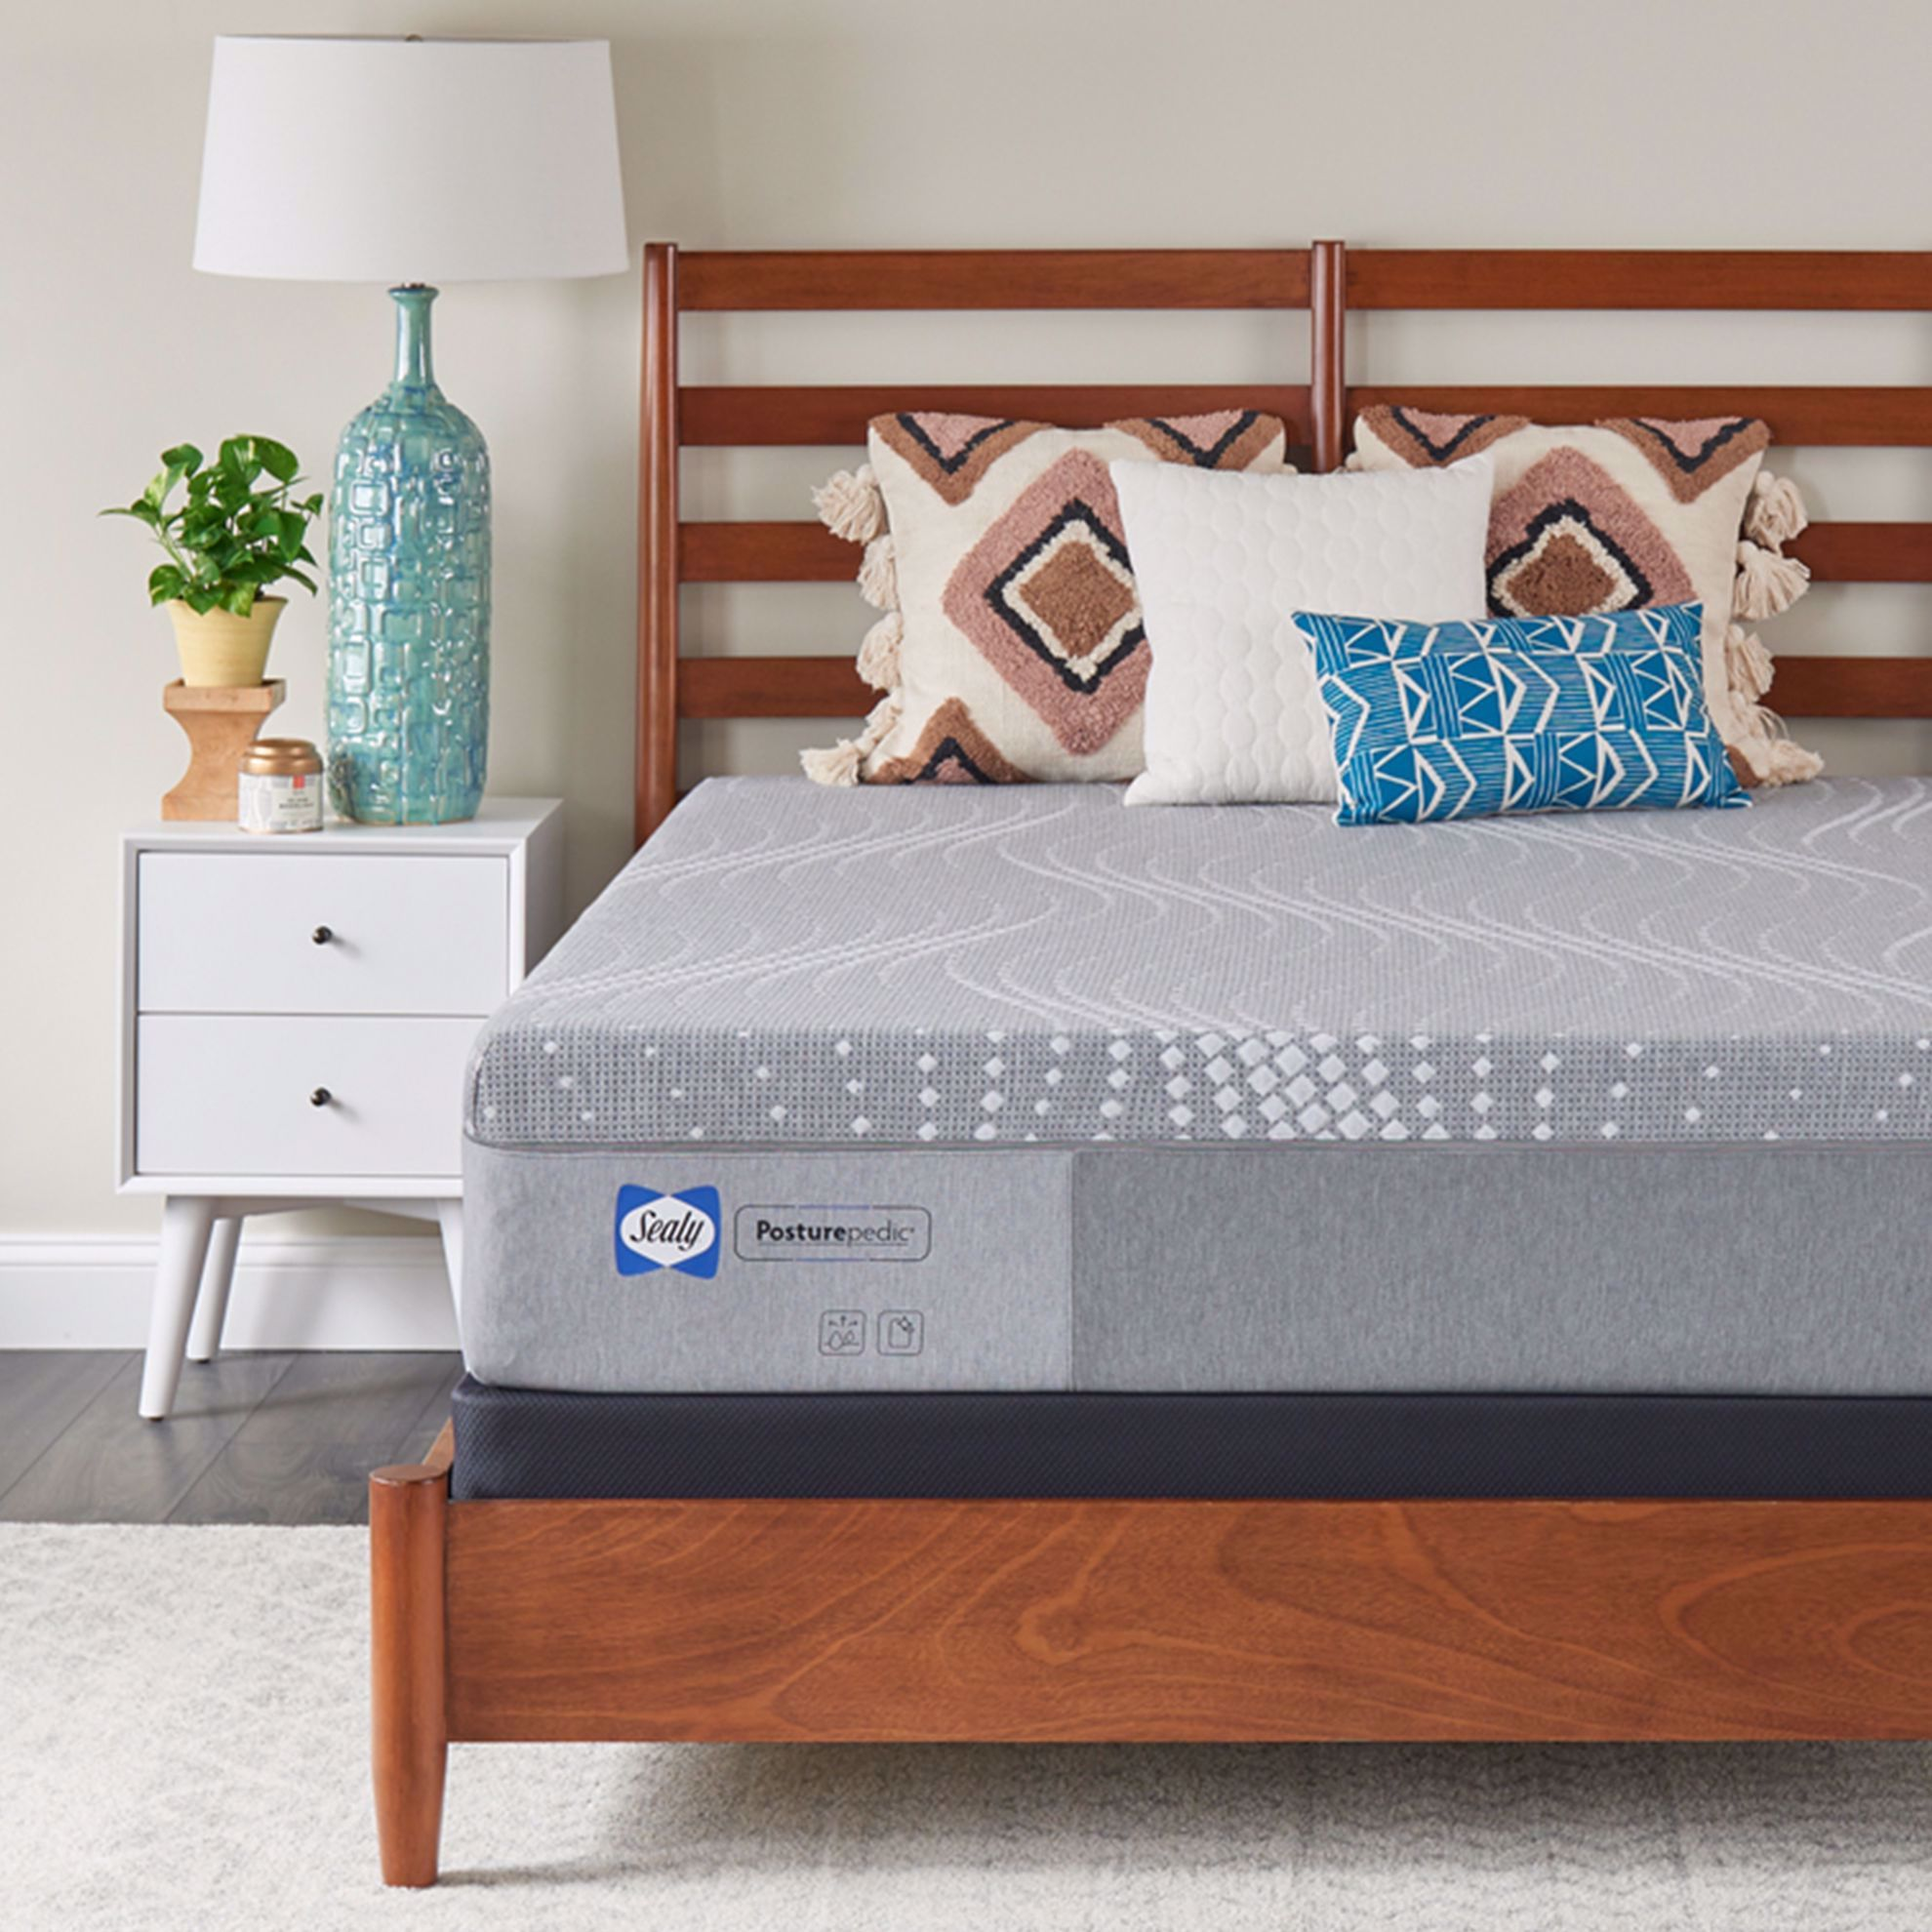 """Picture of Sealy Posturpedic 12"""" King Mattress-in-a-Box"""